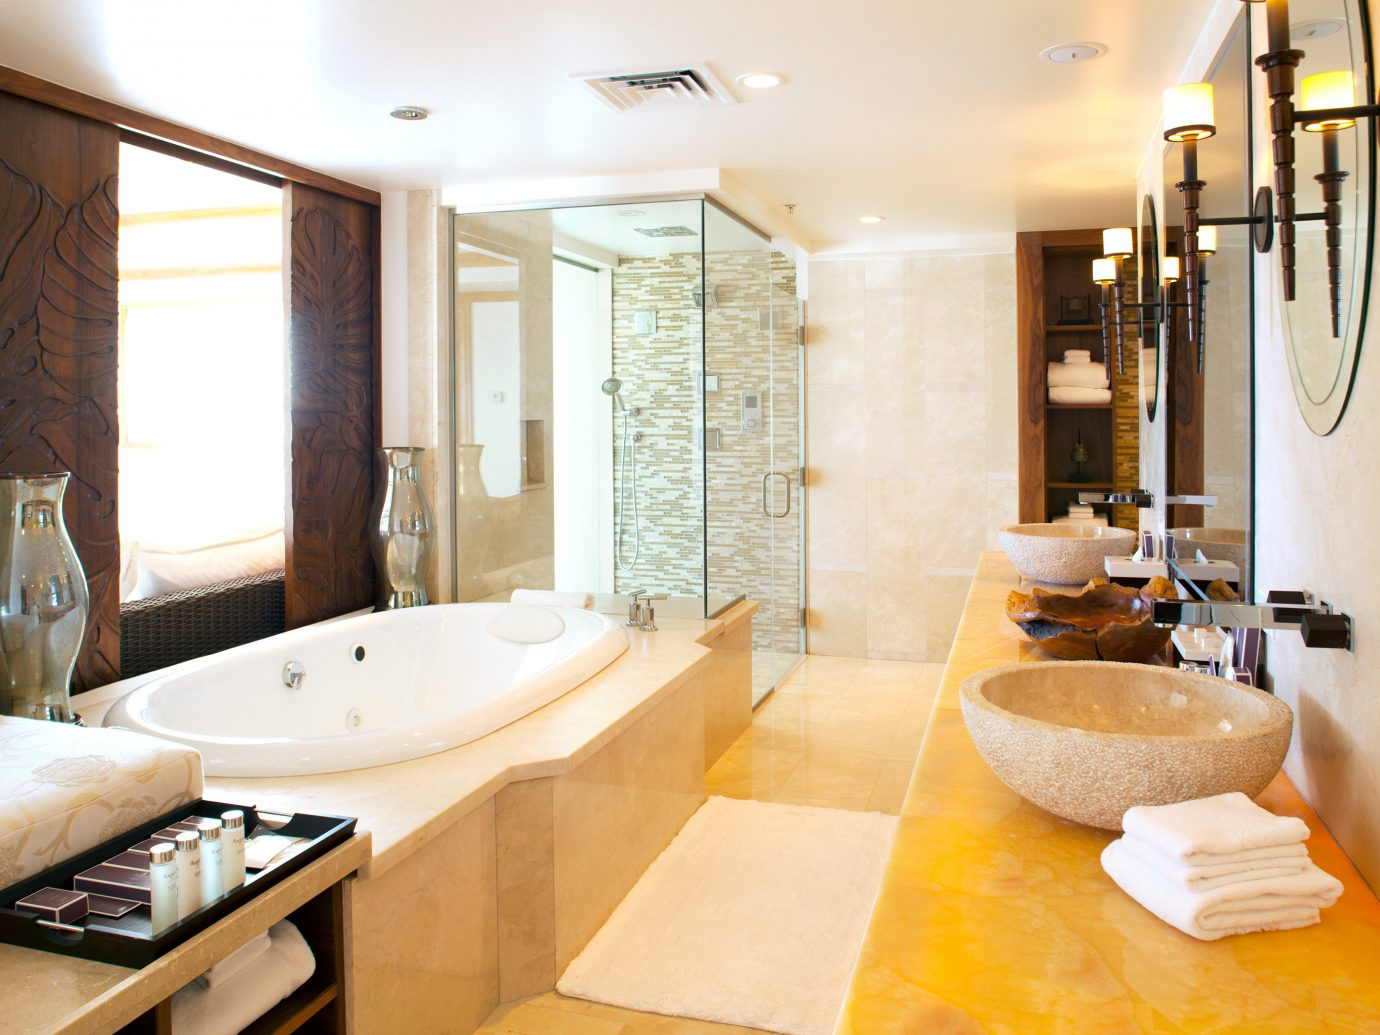 Bath Beach Beachfront Boutique Hotels Family Hawaii Honolulu Hotels Island Resort Romantic indoor wall bathroom floor room property sink estate Suite home real estate interior design counter cottage apartment swimming pool bathtub tub